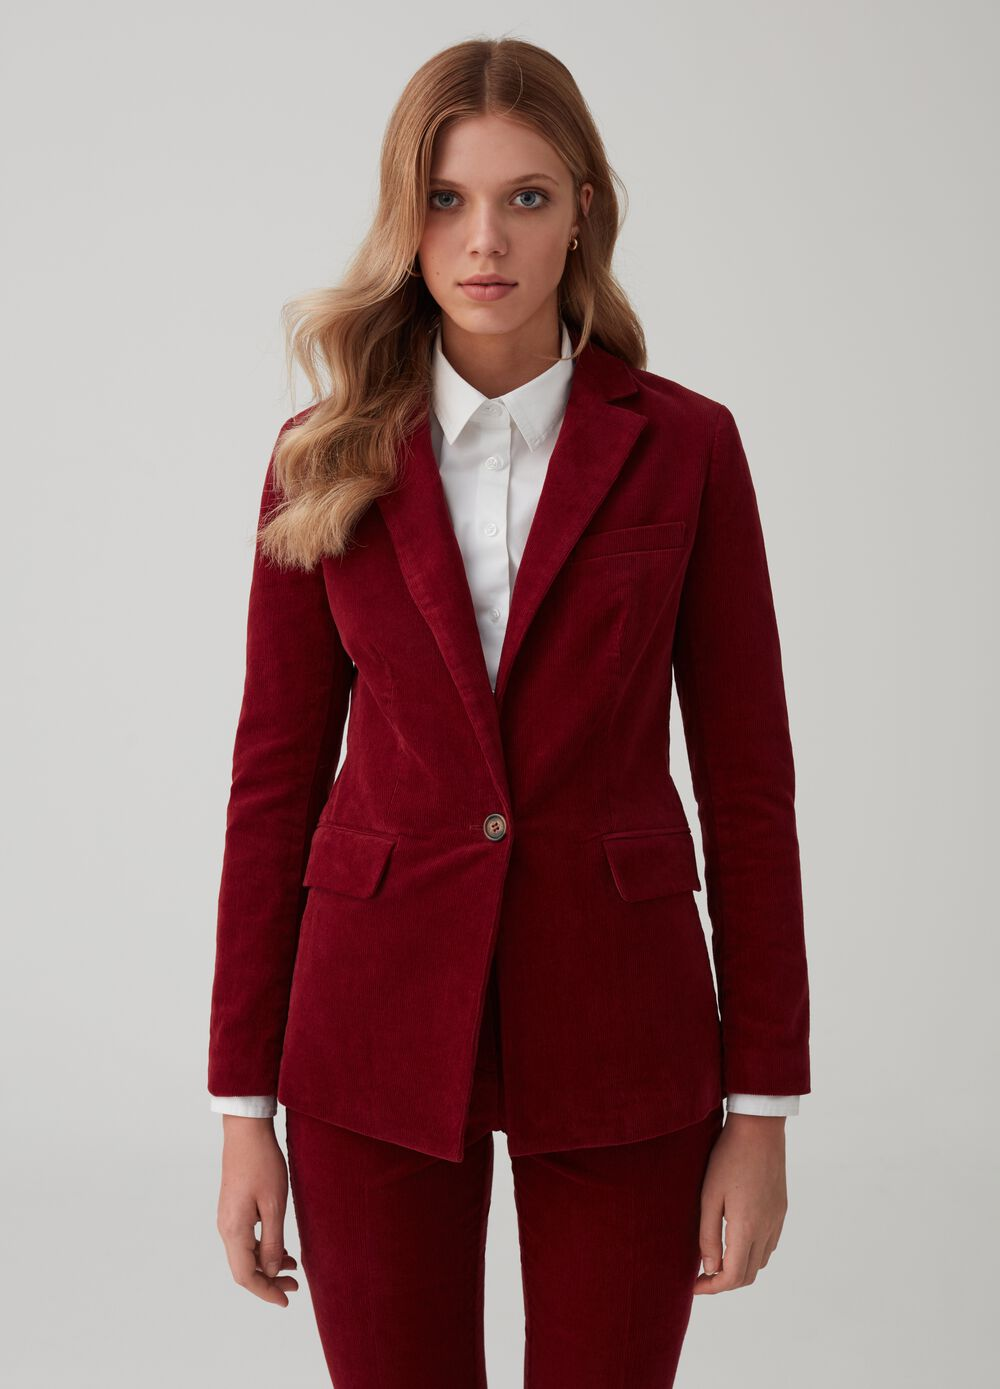 Velvet single-breasted blazer with pockets